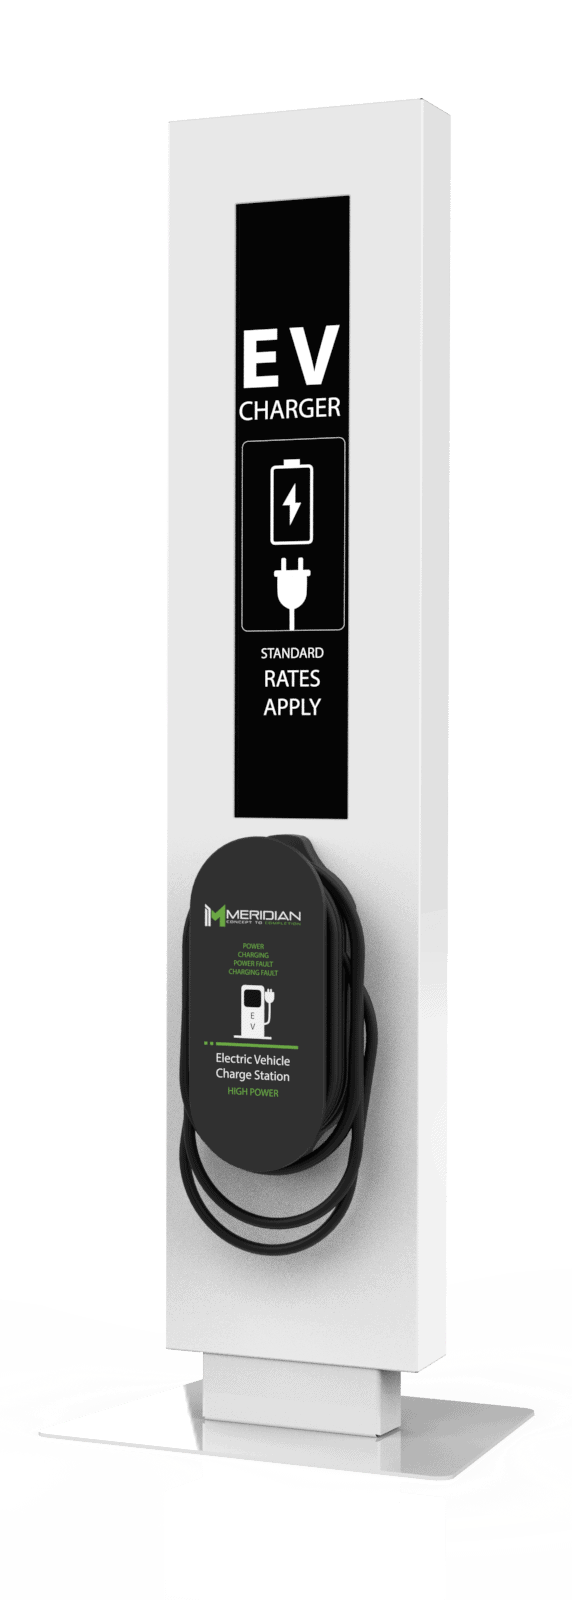 EV Charger